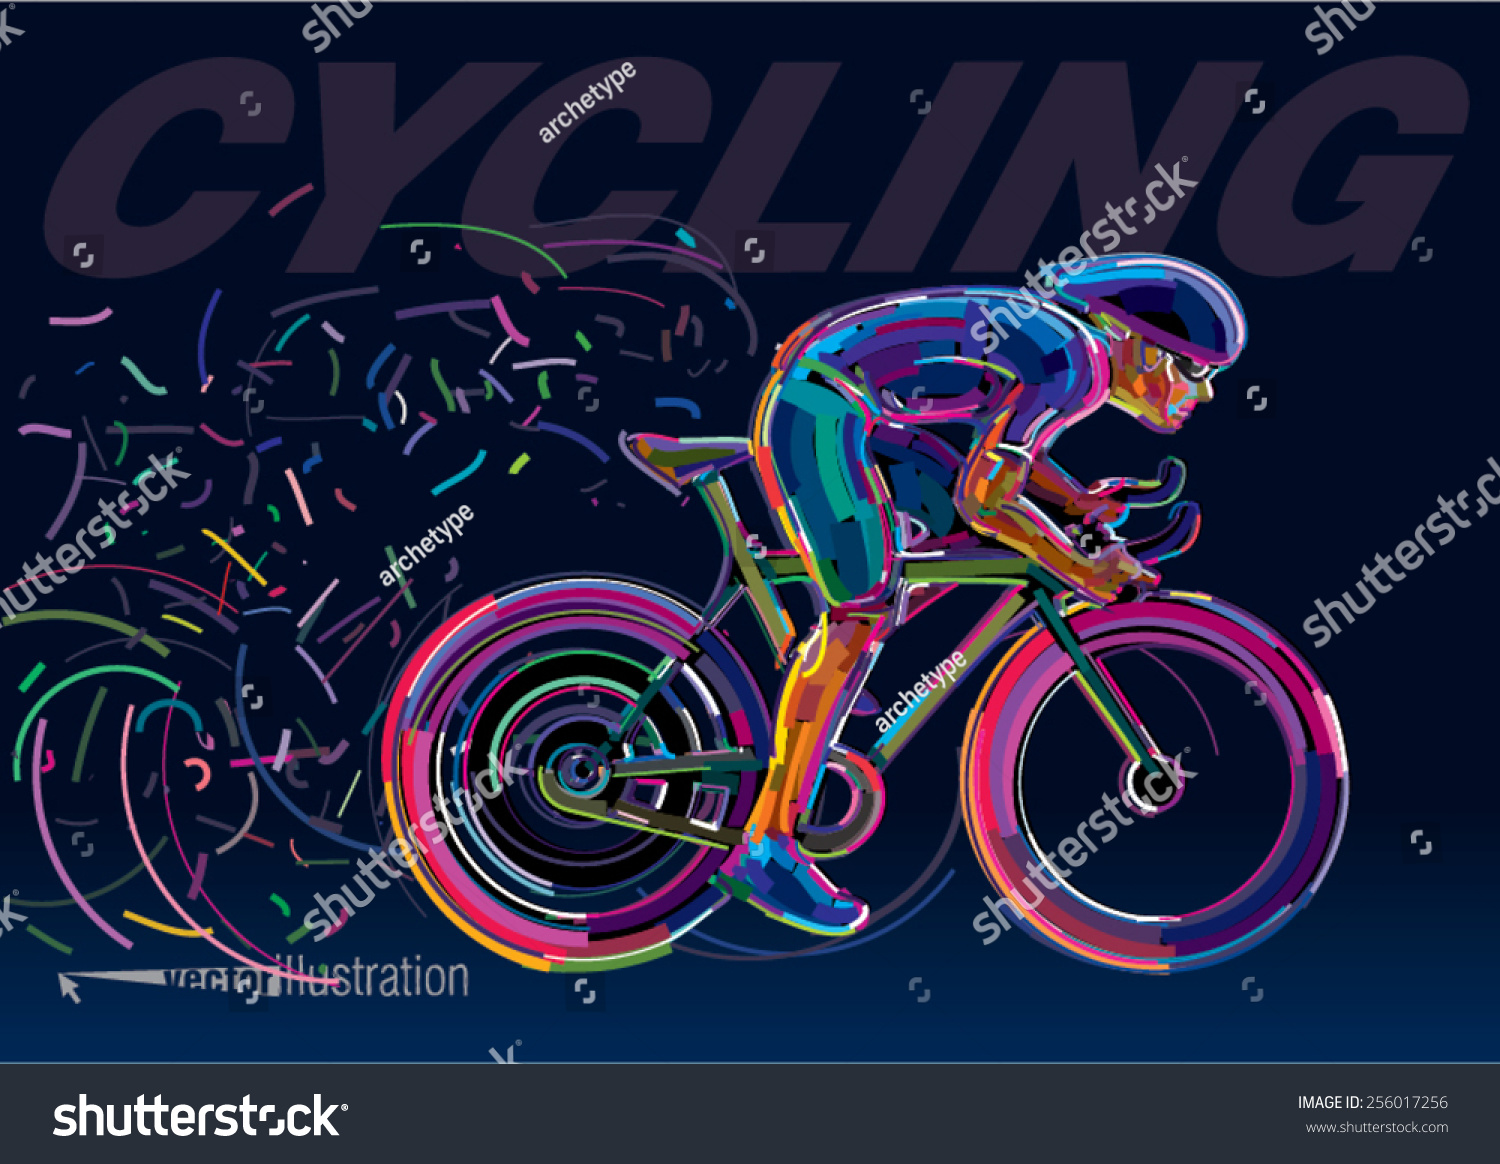 online image   photo editor shutterstock editor bicycle vector png bicycle vector illustrator